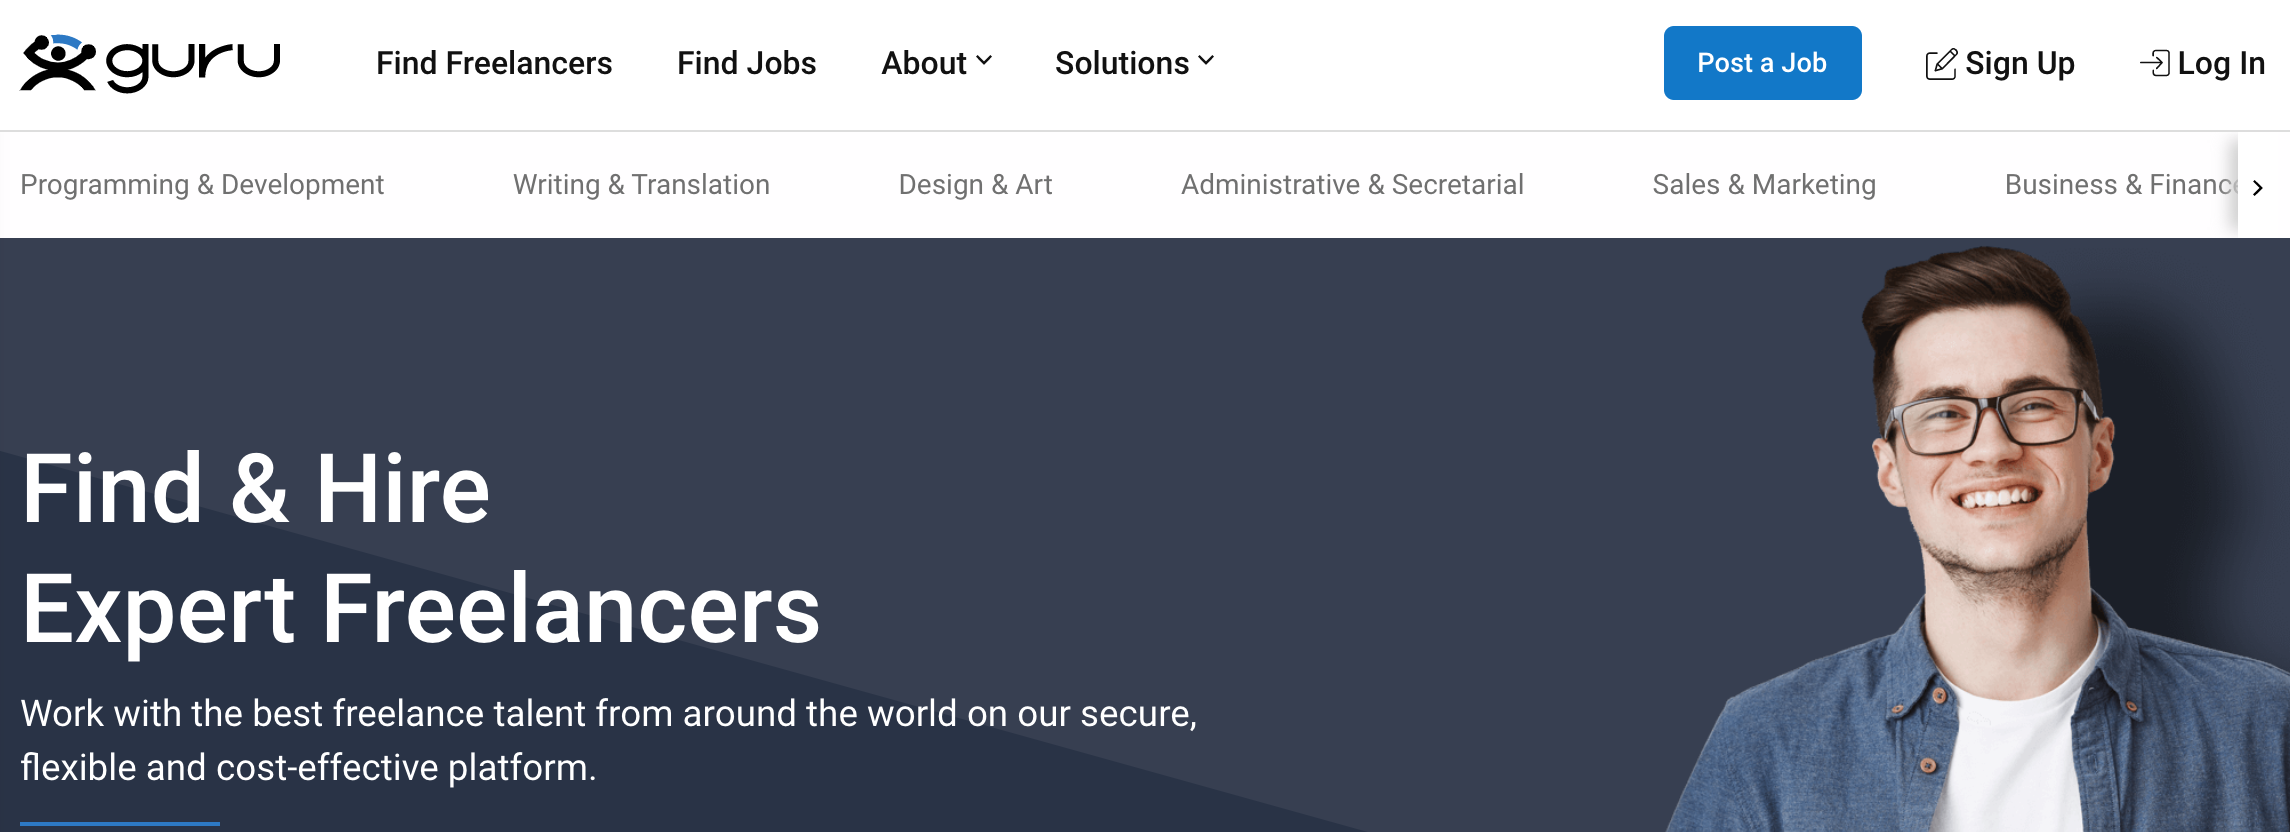 Guru: Find & HIre Freelance Developers